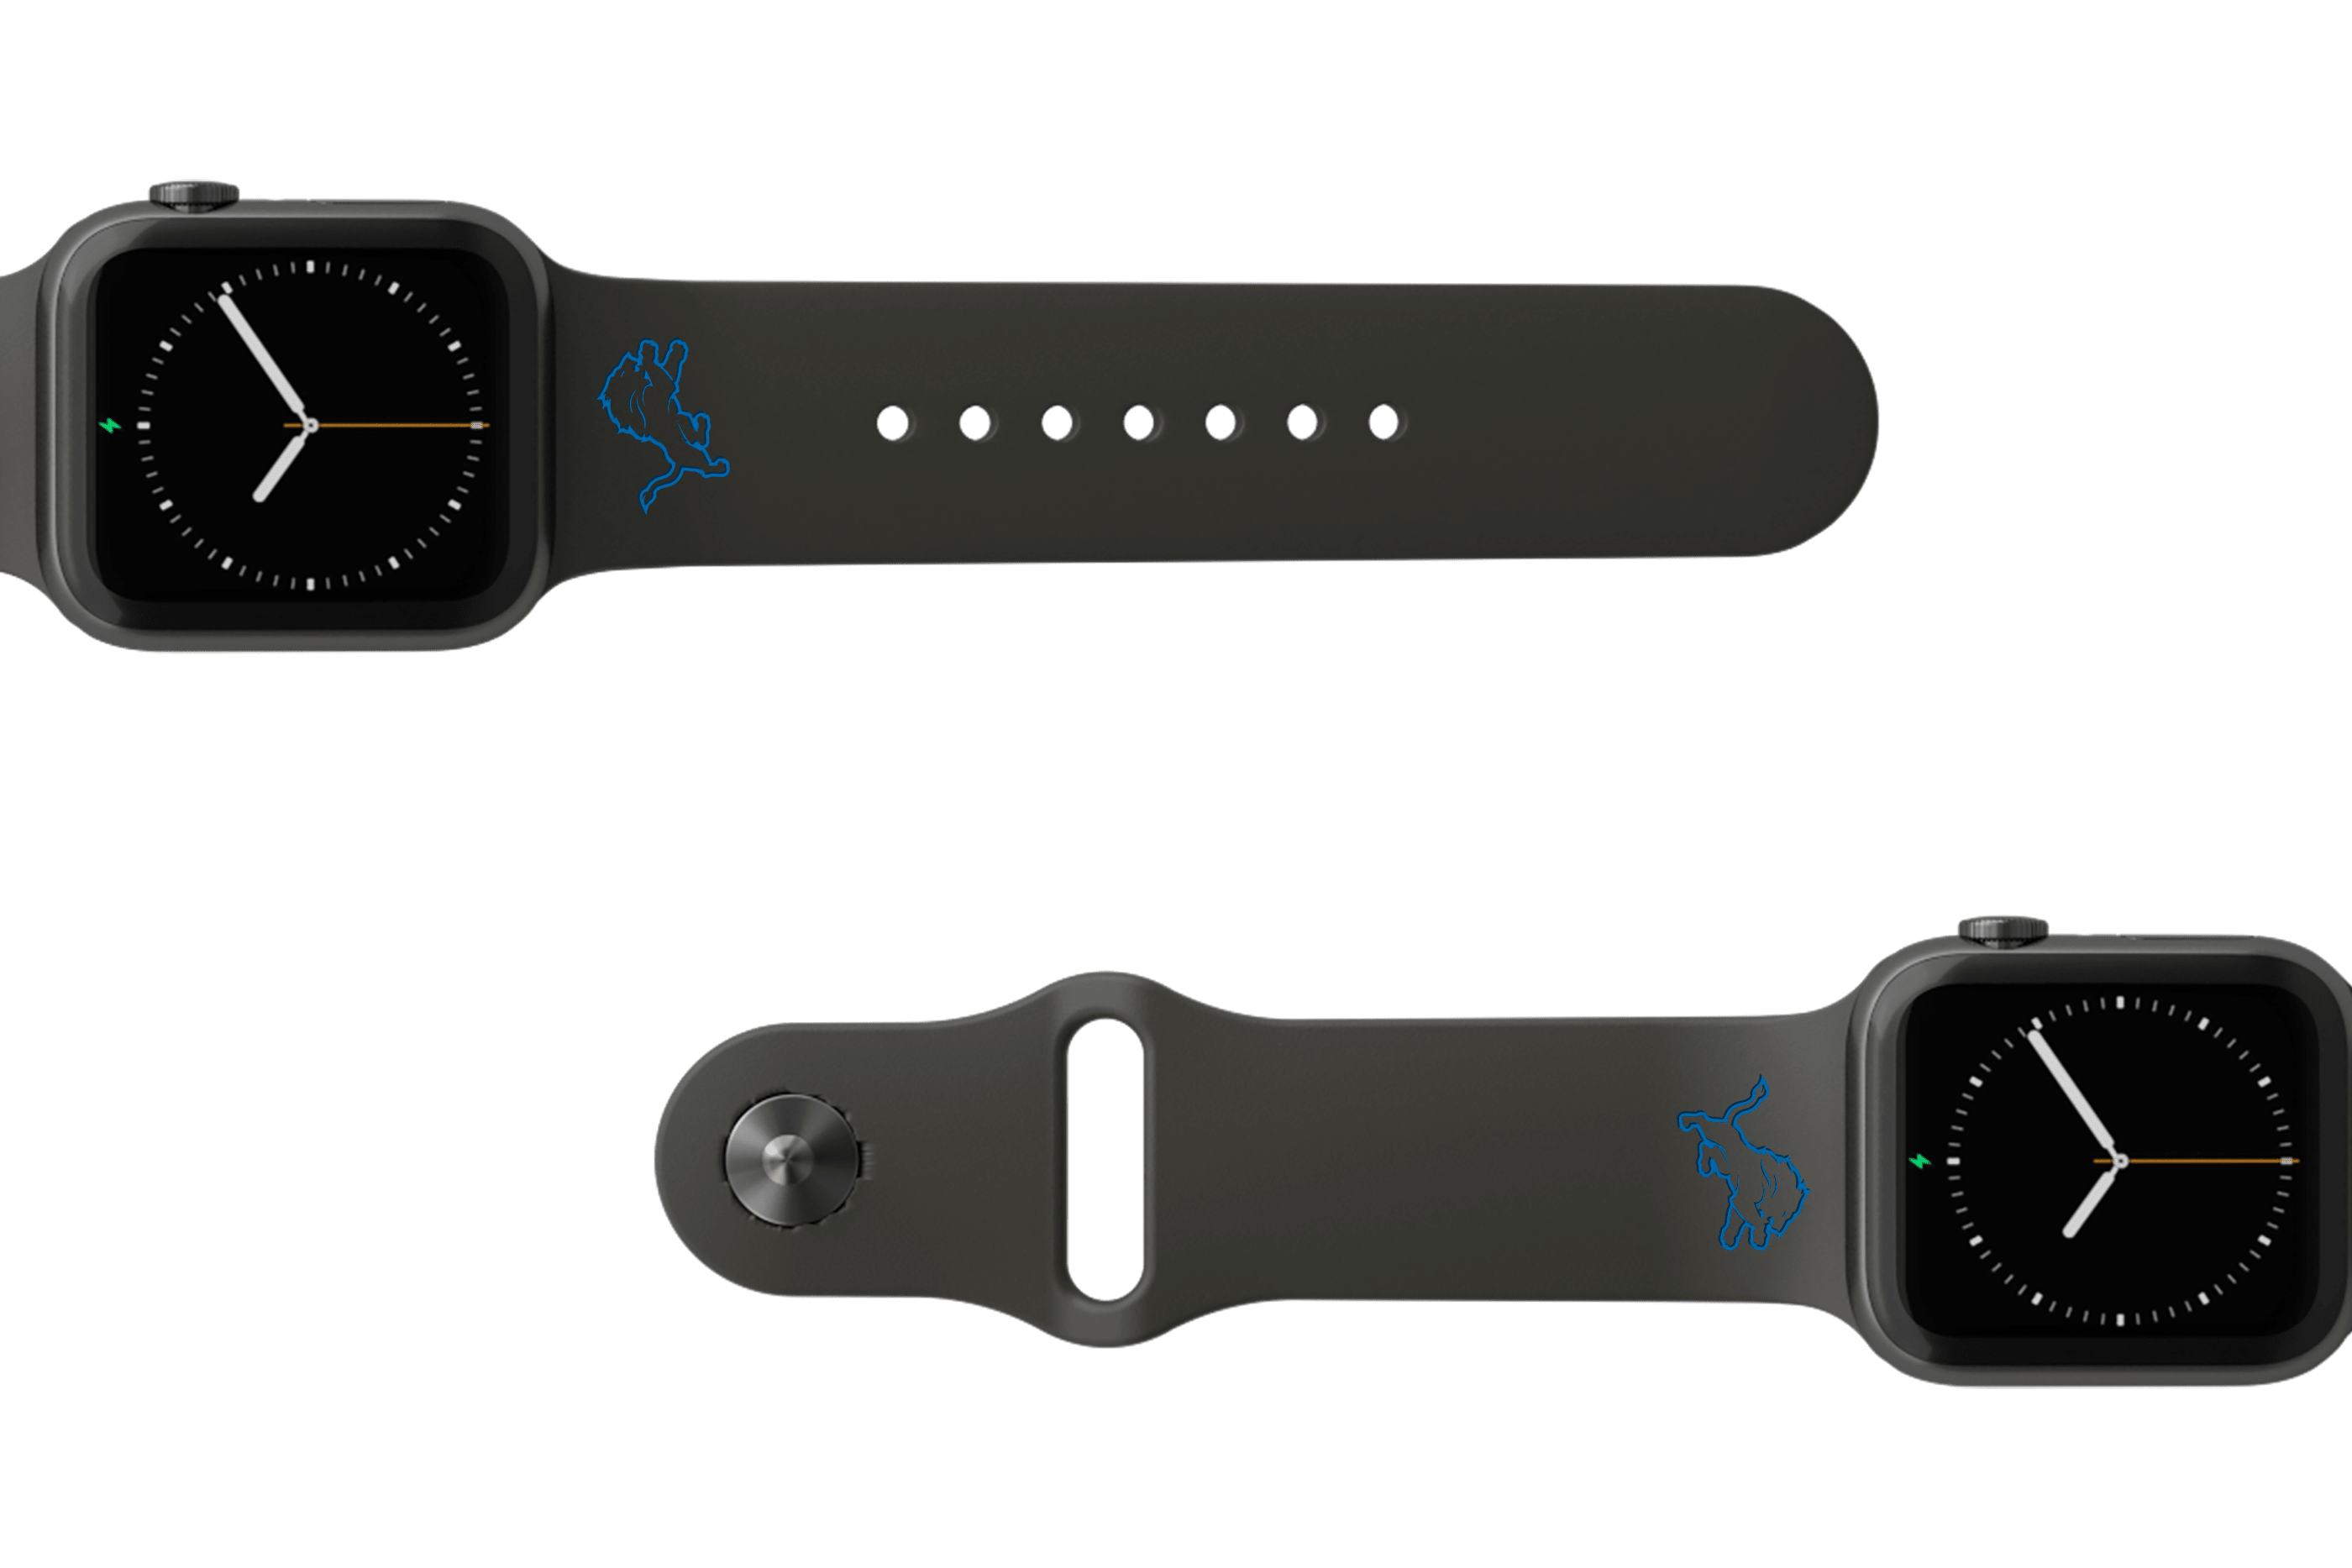 NFL Detriot Lions Black    apple watch band with gray hardware viewed from top down